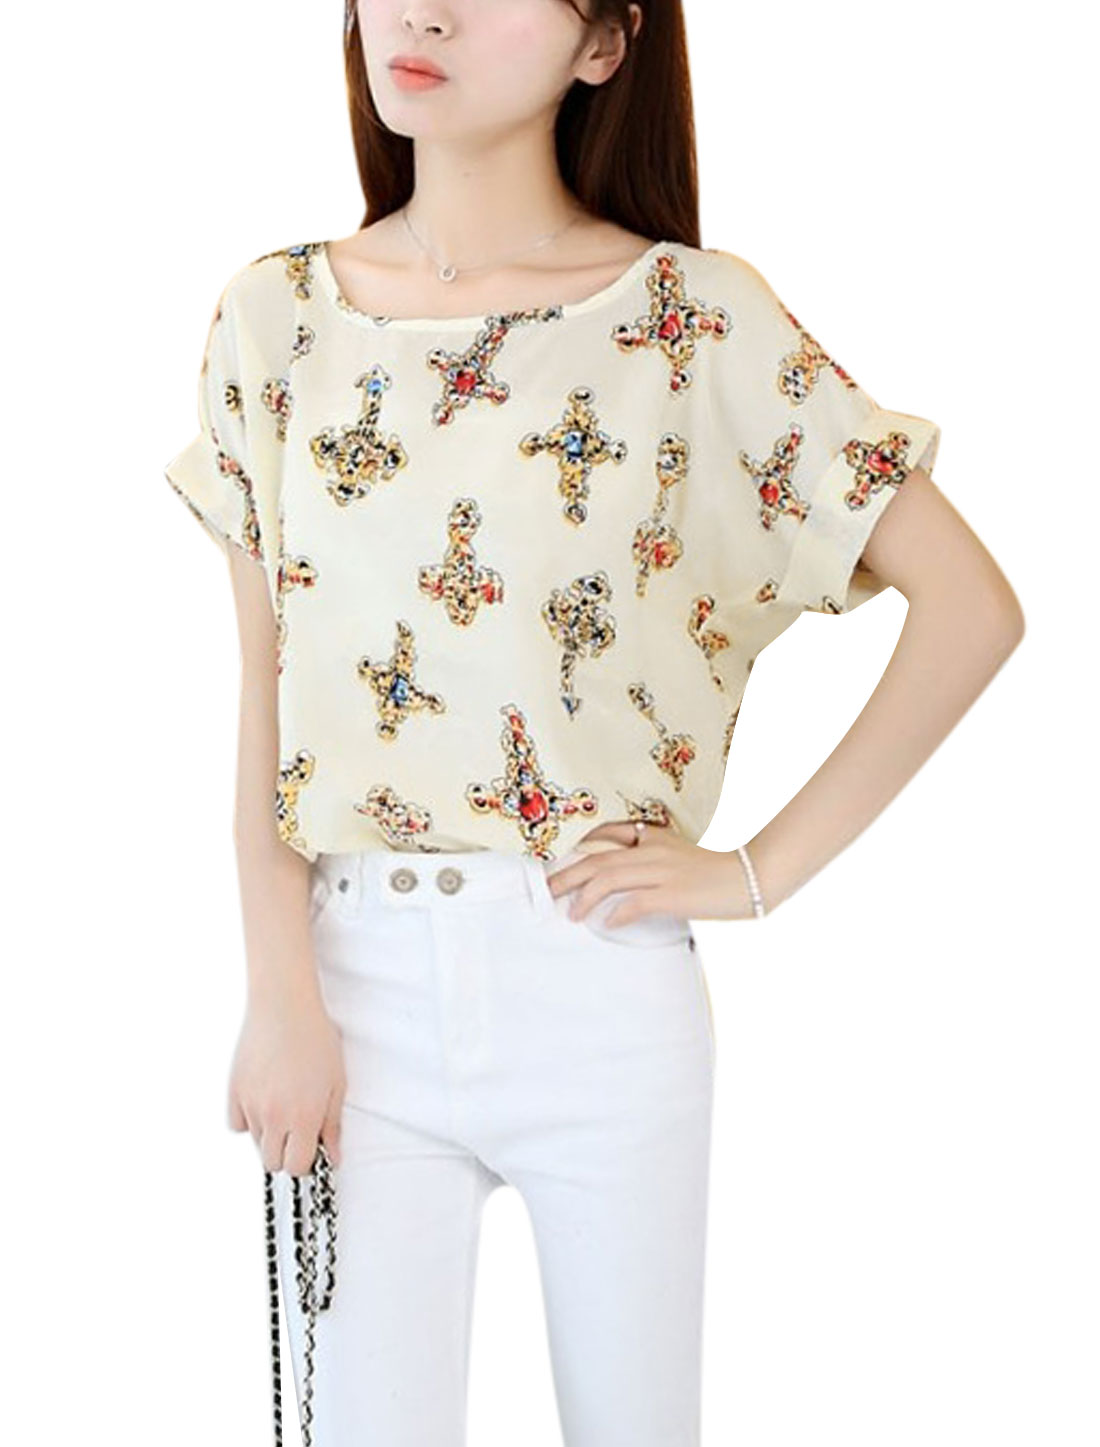 Lady Soft Short Batwing Sleeve Cross Pattern T-Shirt Beige XS